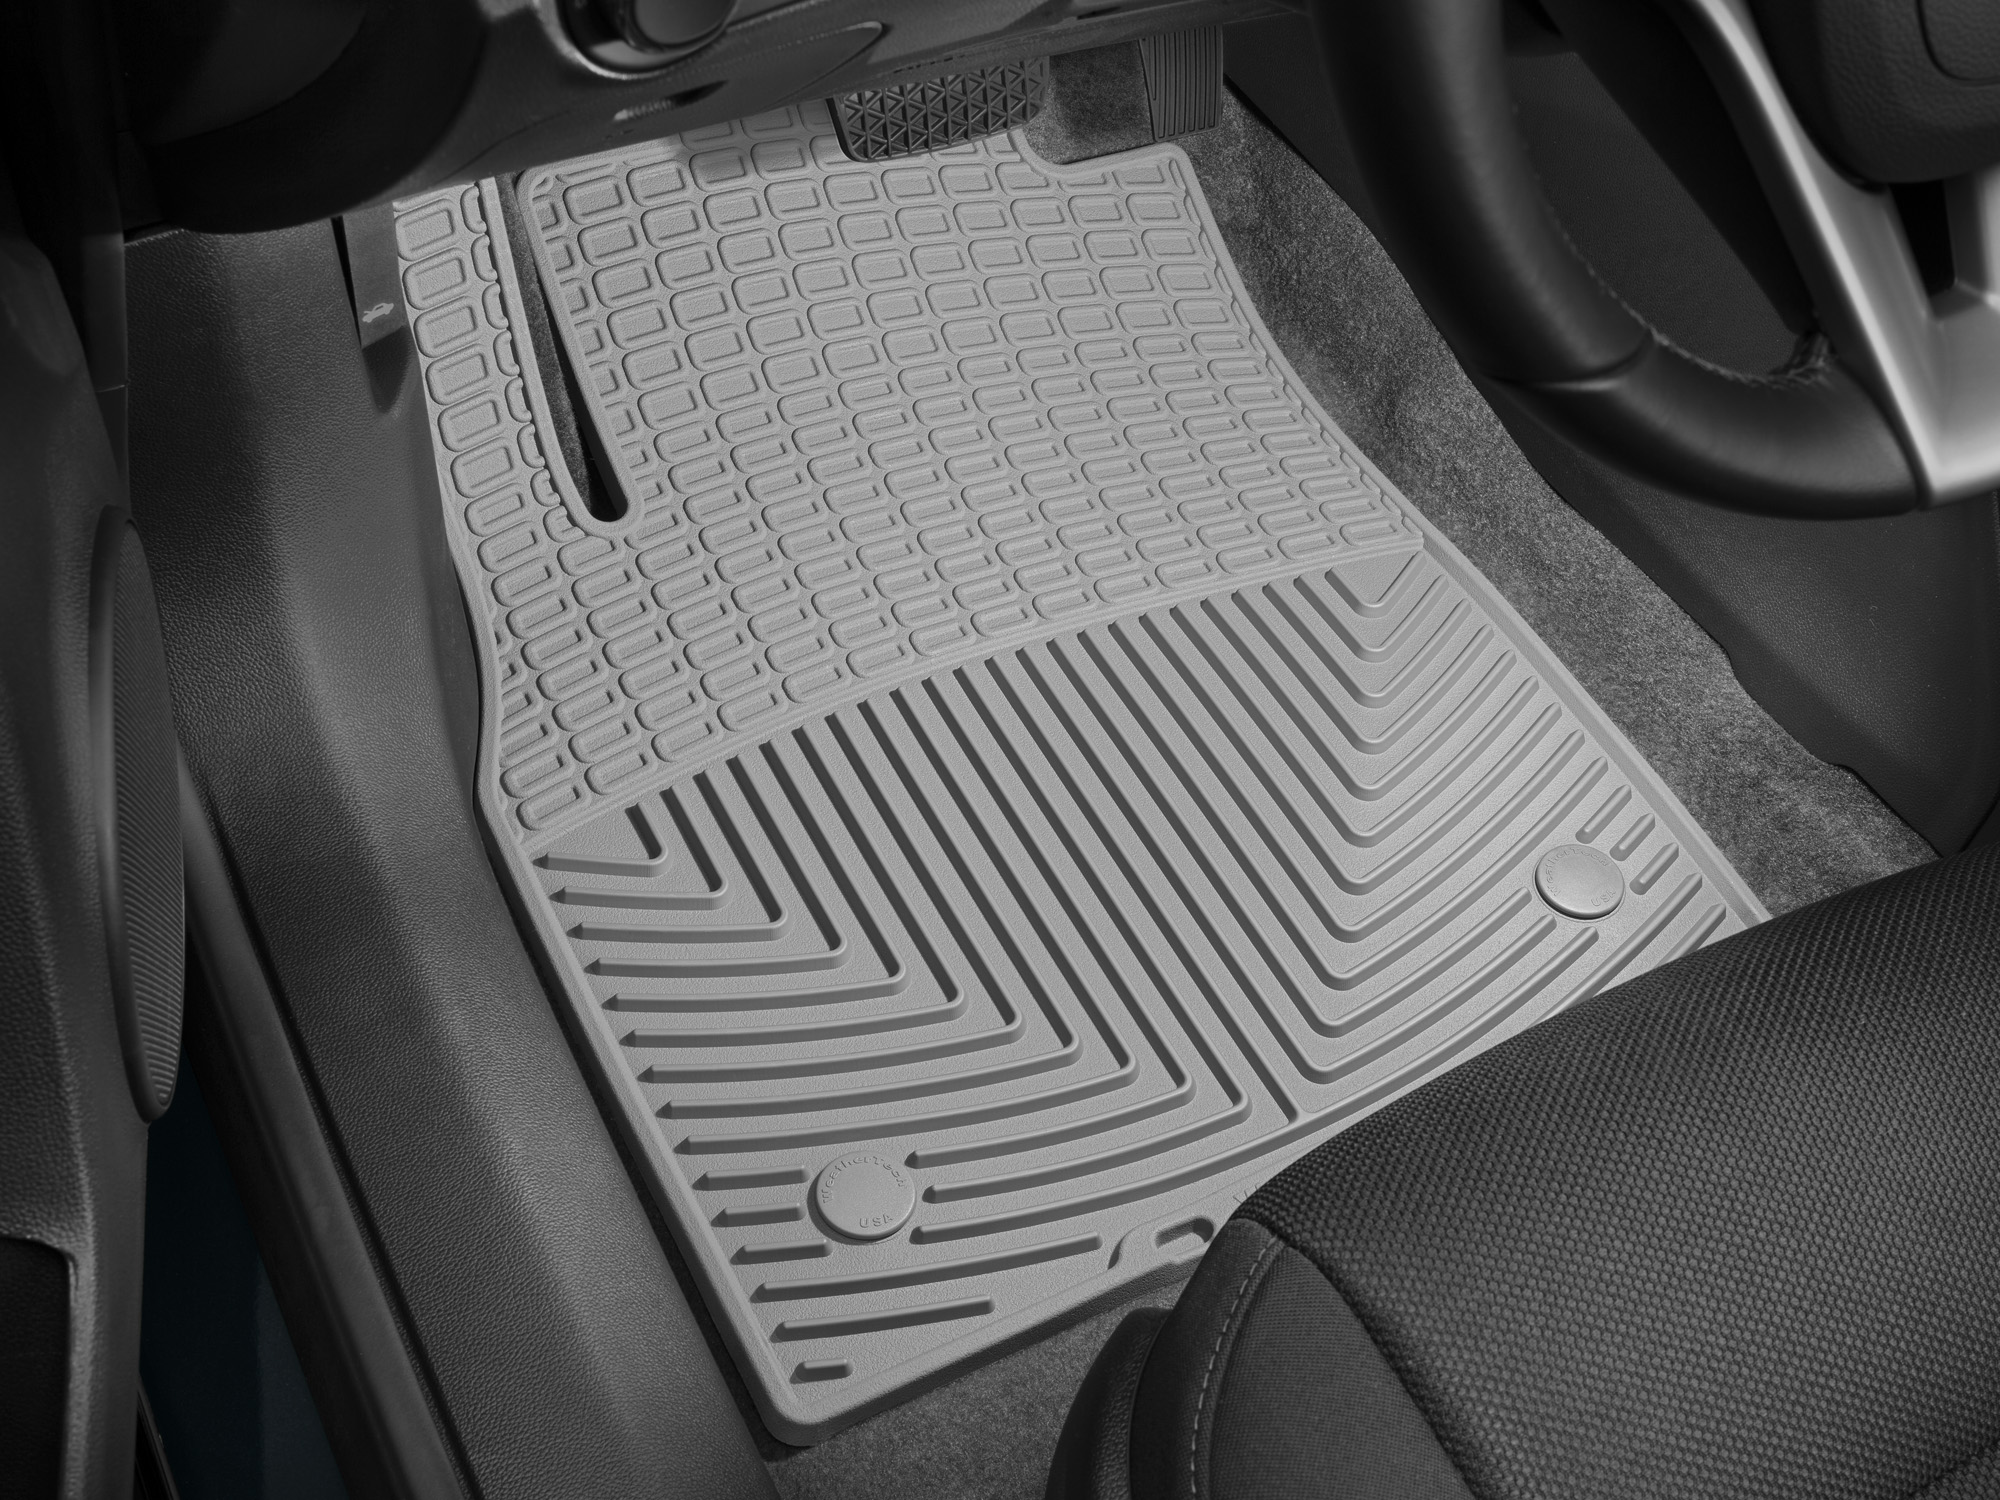 Weathertech mats cleaner - All Weather Floor Mats Flexible Floor Mats For Your Vehicle